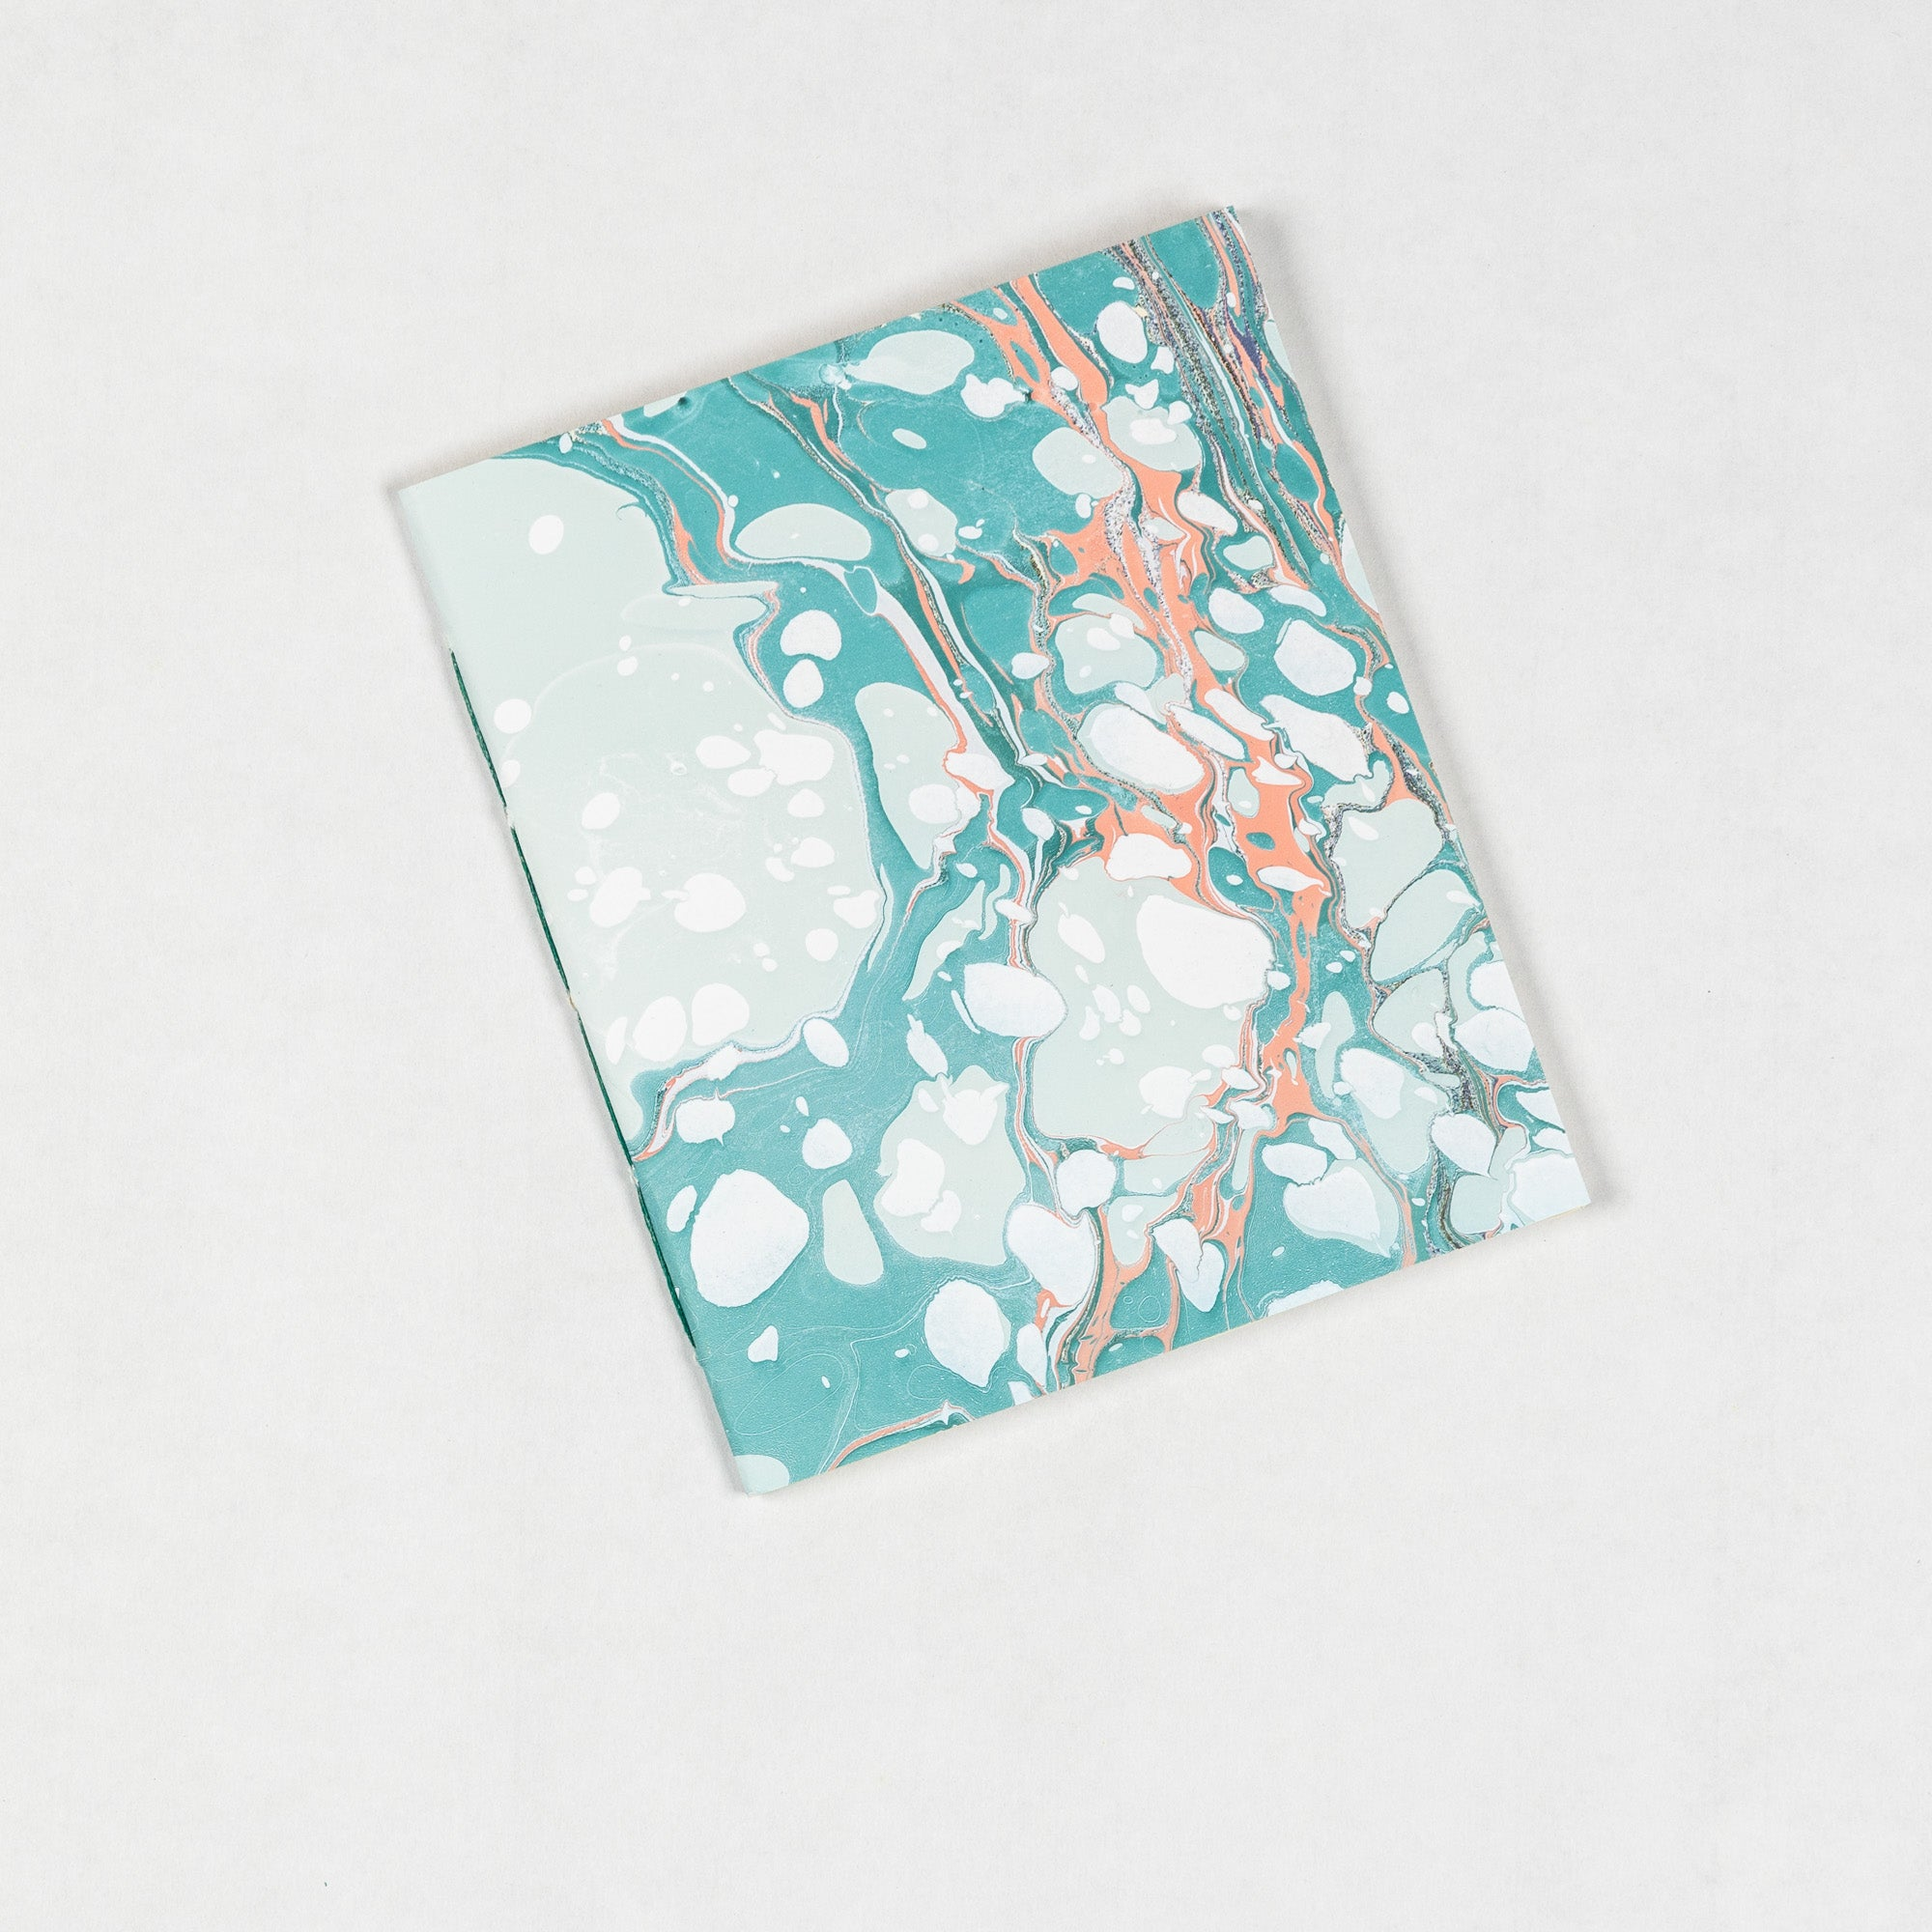 Small Marbled Notebook - light + dark blue